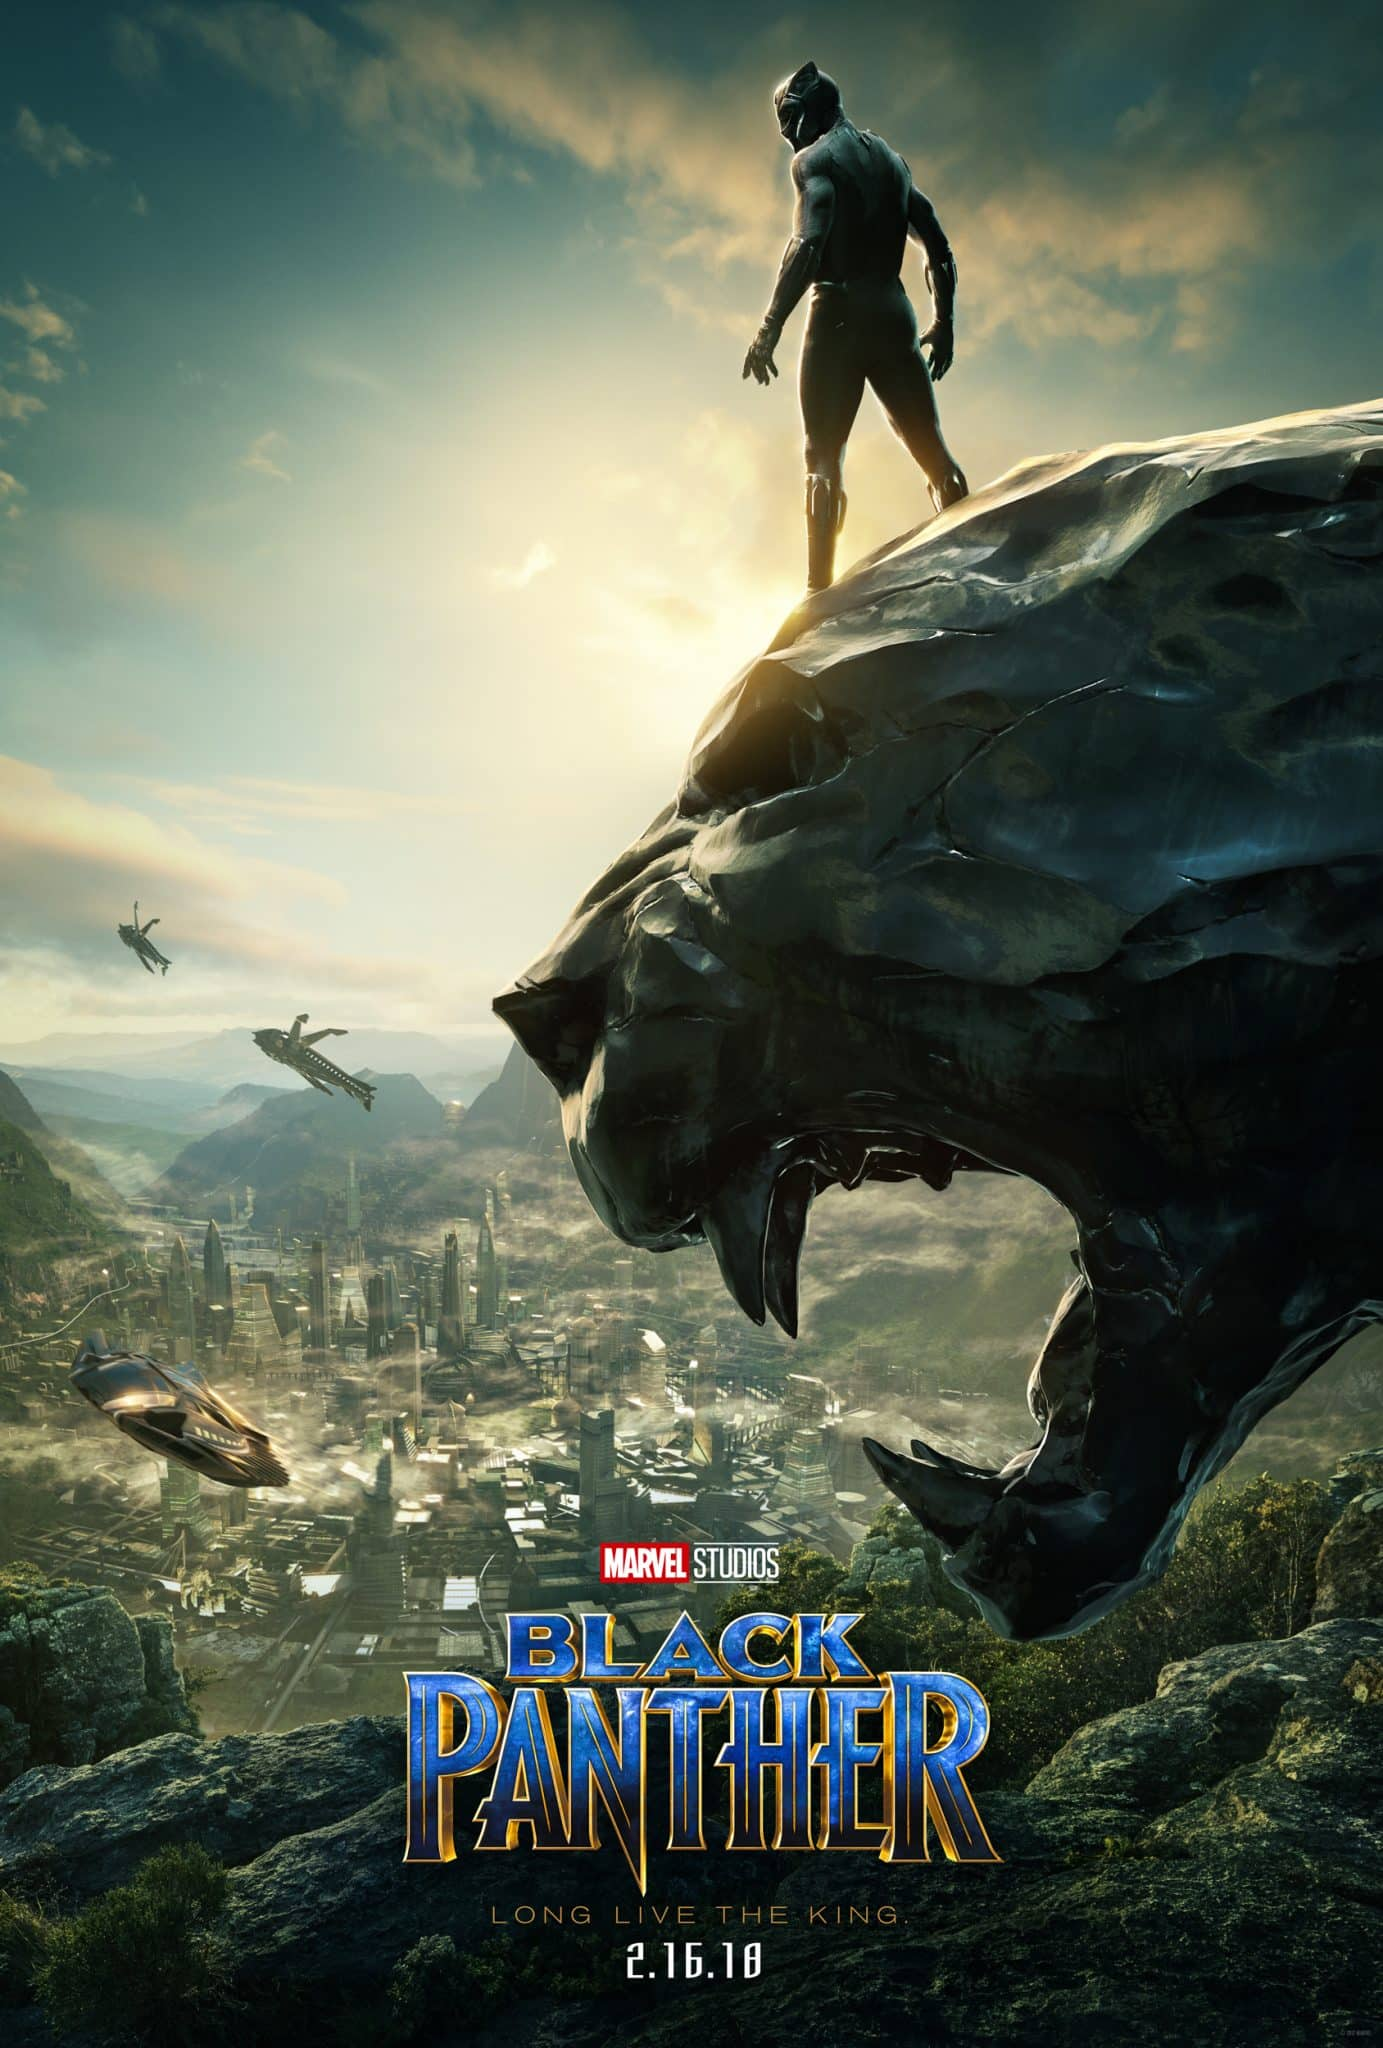 NEW Black Panther Poster Available! #BlackPanther